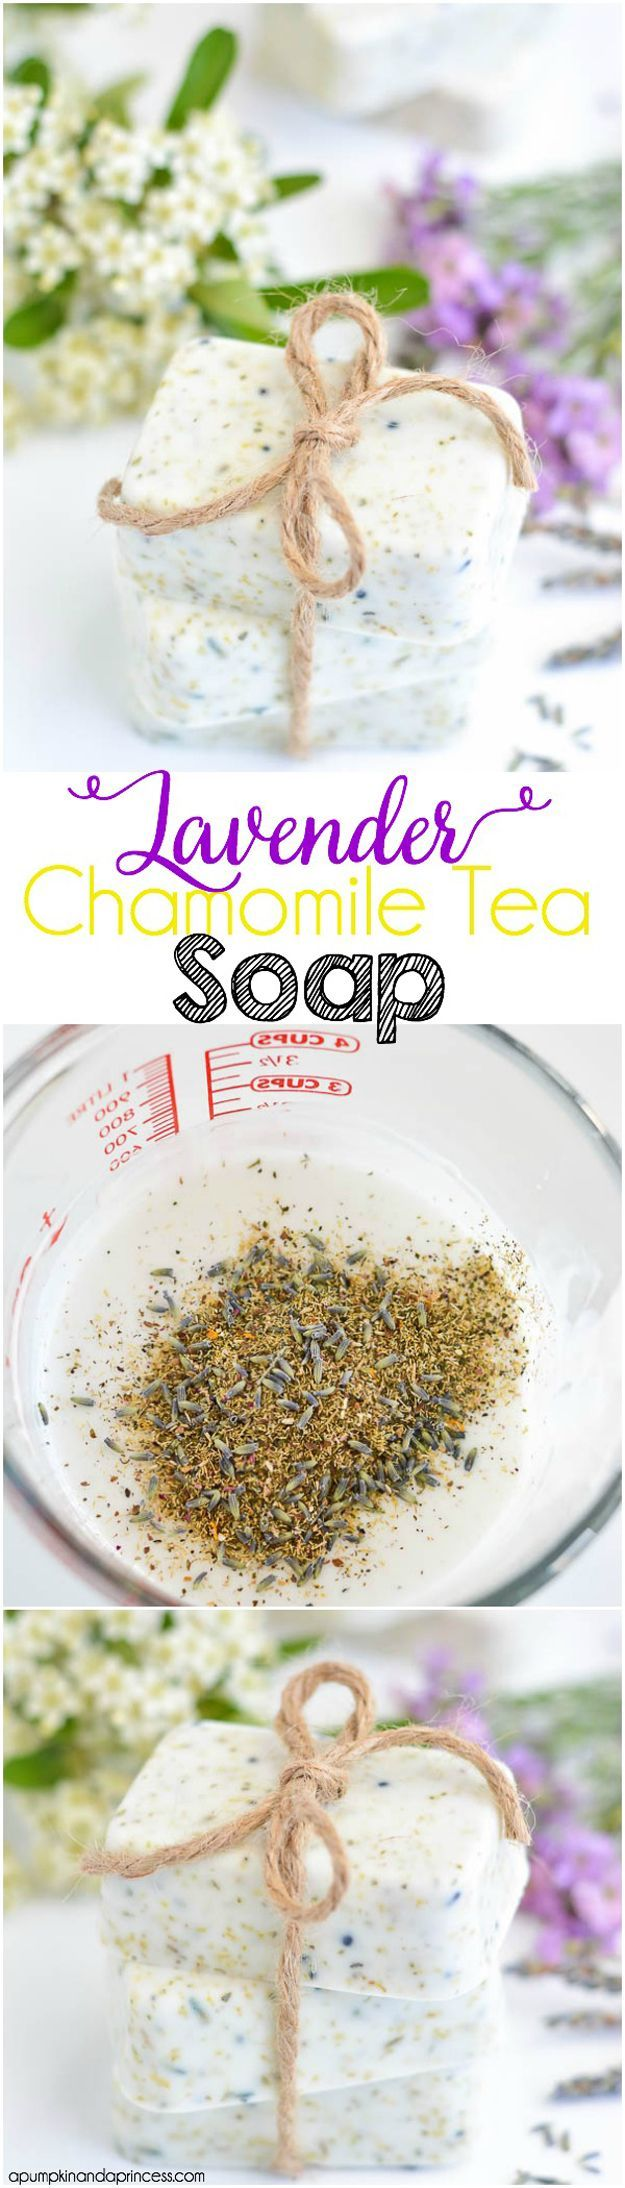 DIY Bar Soap: Lavender Chamomile Tea Soap   DIY Homemade Cool Mother's Day Ideas by DIY Ready at  http://diyready.com/diy-gifts-mothers-day-ideas/